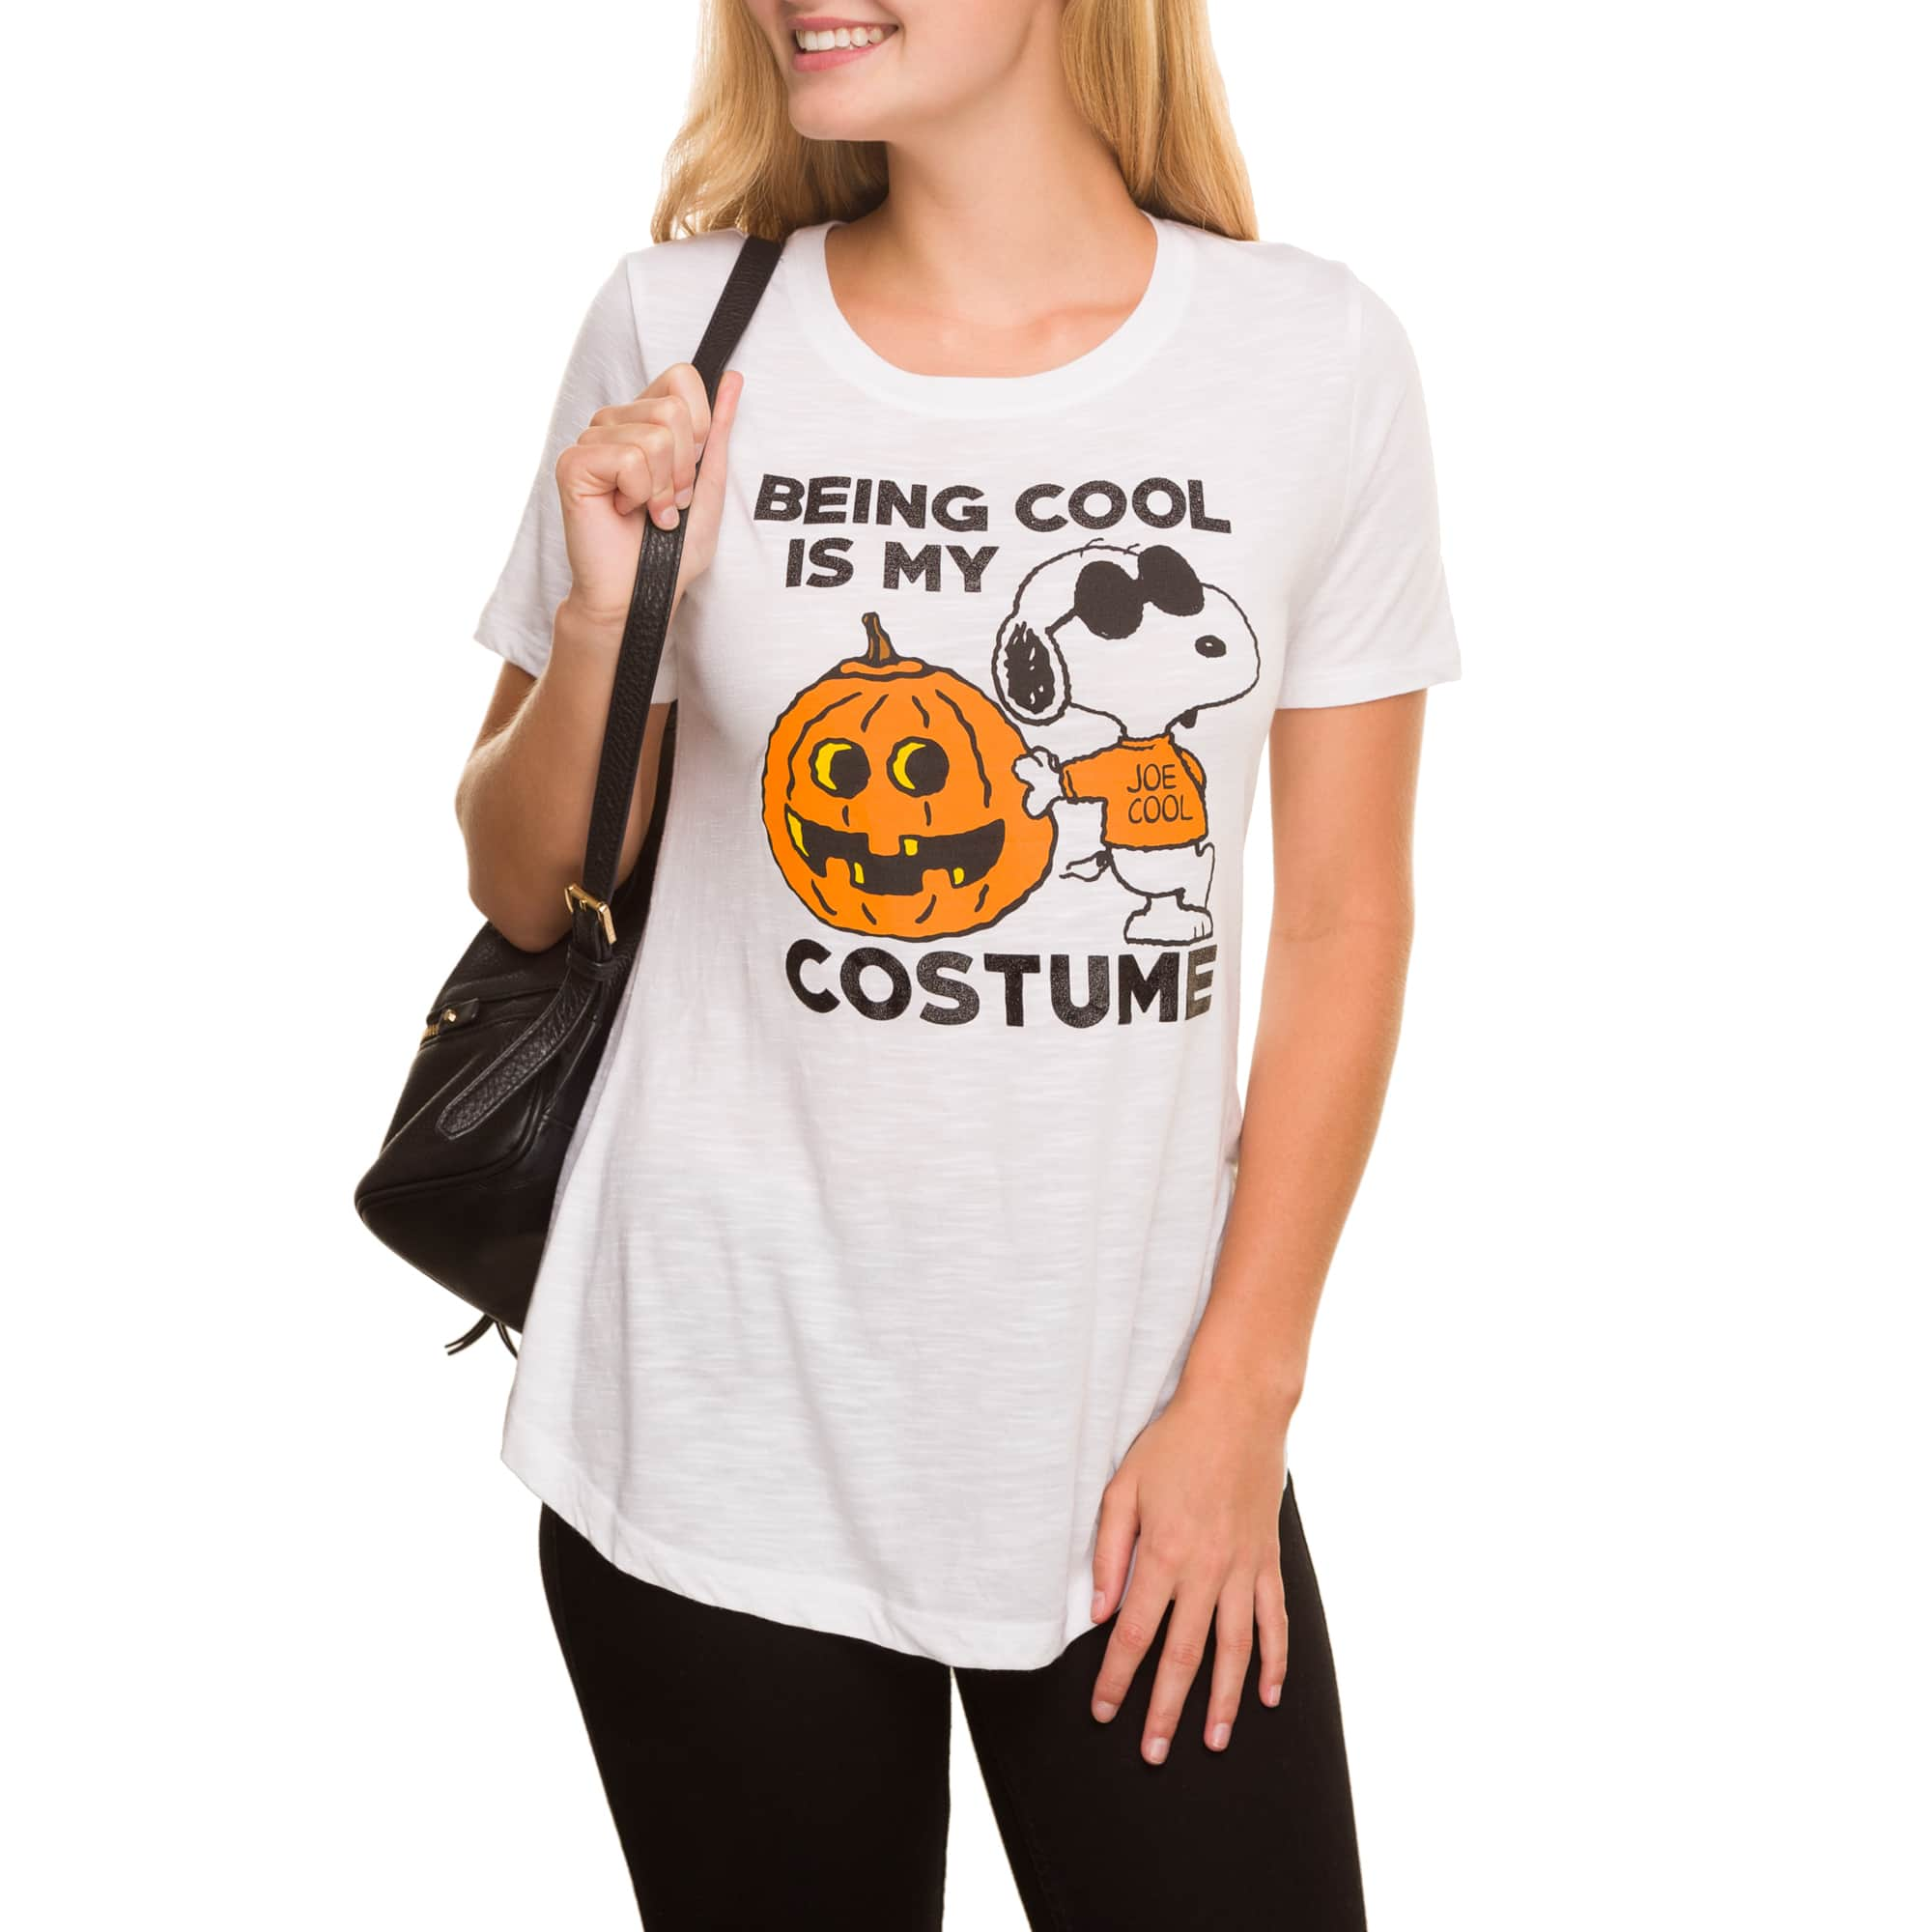 Juniors Halloween Graphic Shirts Longsleeve or Shortsleeve from $2.50 + Free Pickup